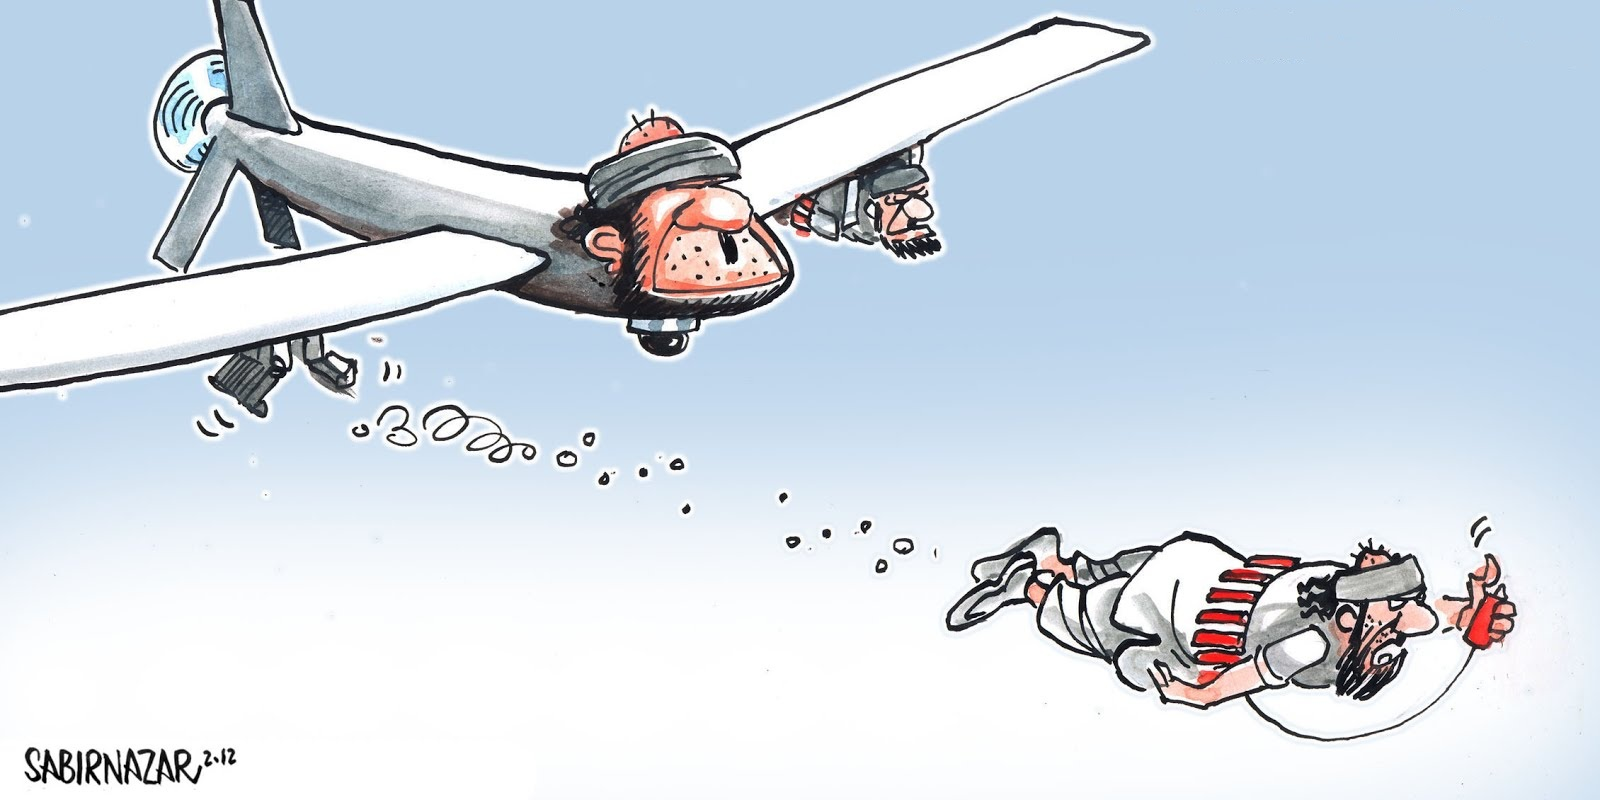 Drones or Suicide Bombers? Choose Carefully…